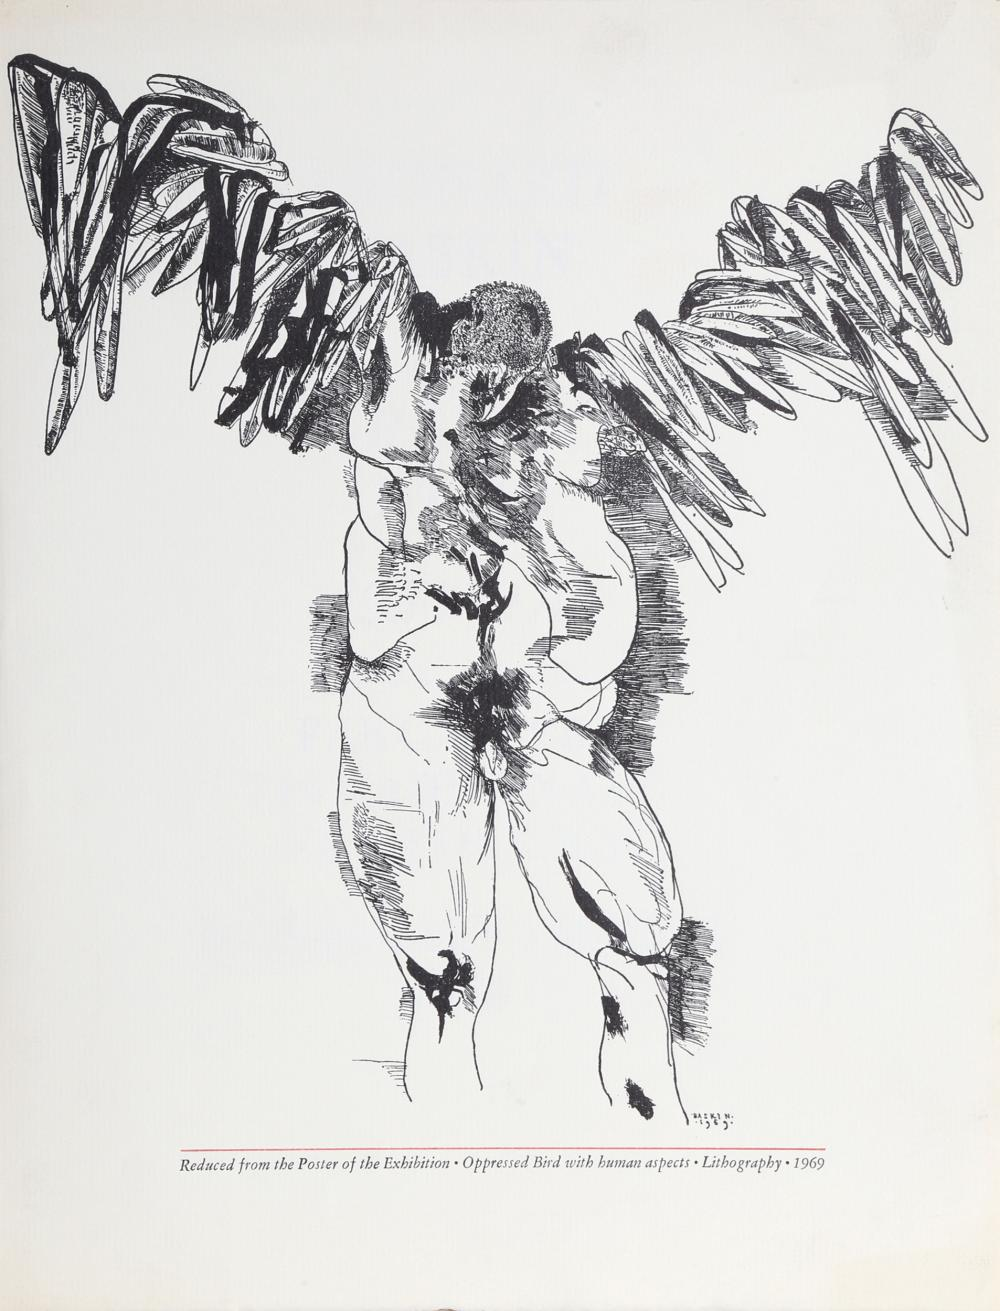 Leonard Baskin, The Graphic Works Exhibition (Icarus), Offset Lithograph